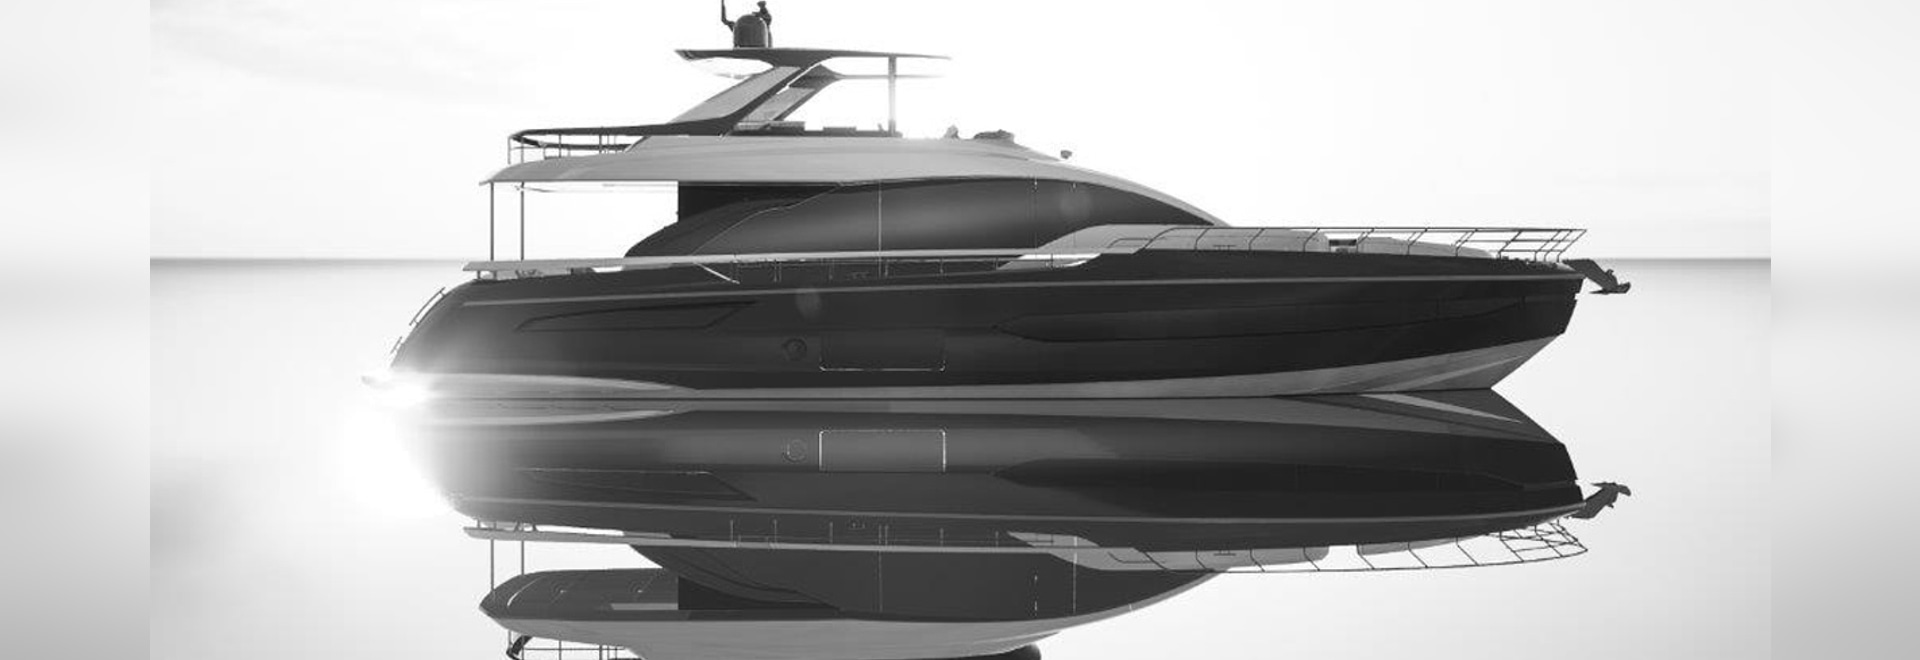 Alberto Mancini's styling is a first for the Azimut flybridge range